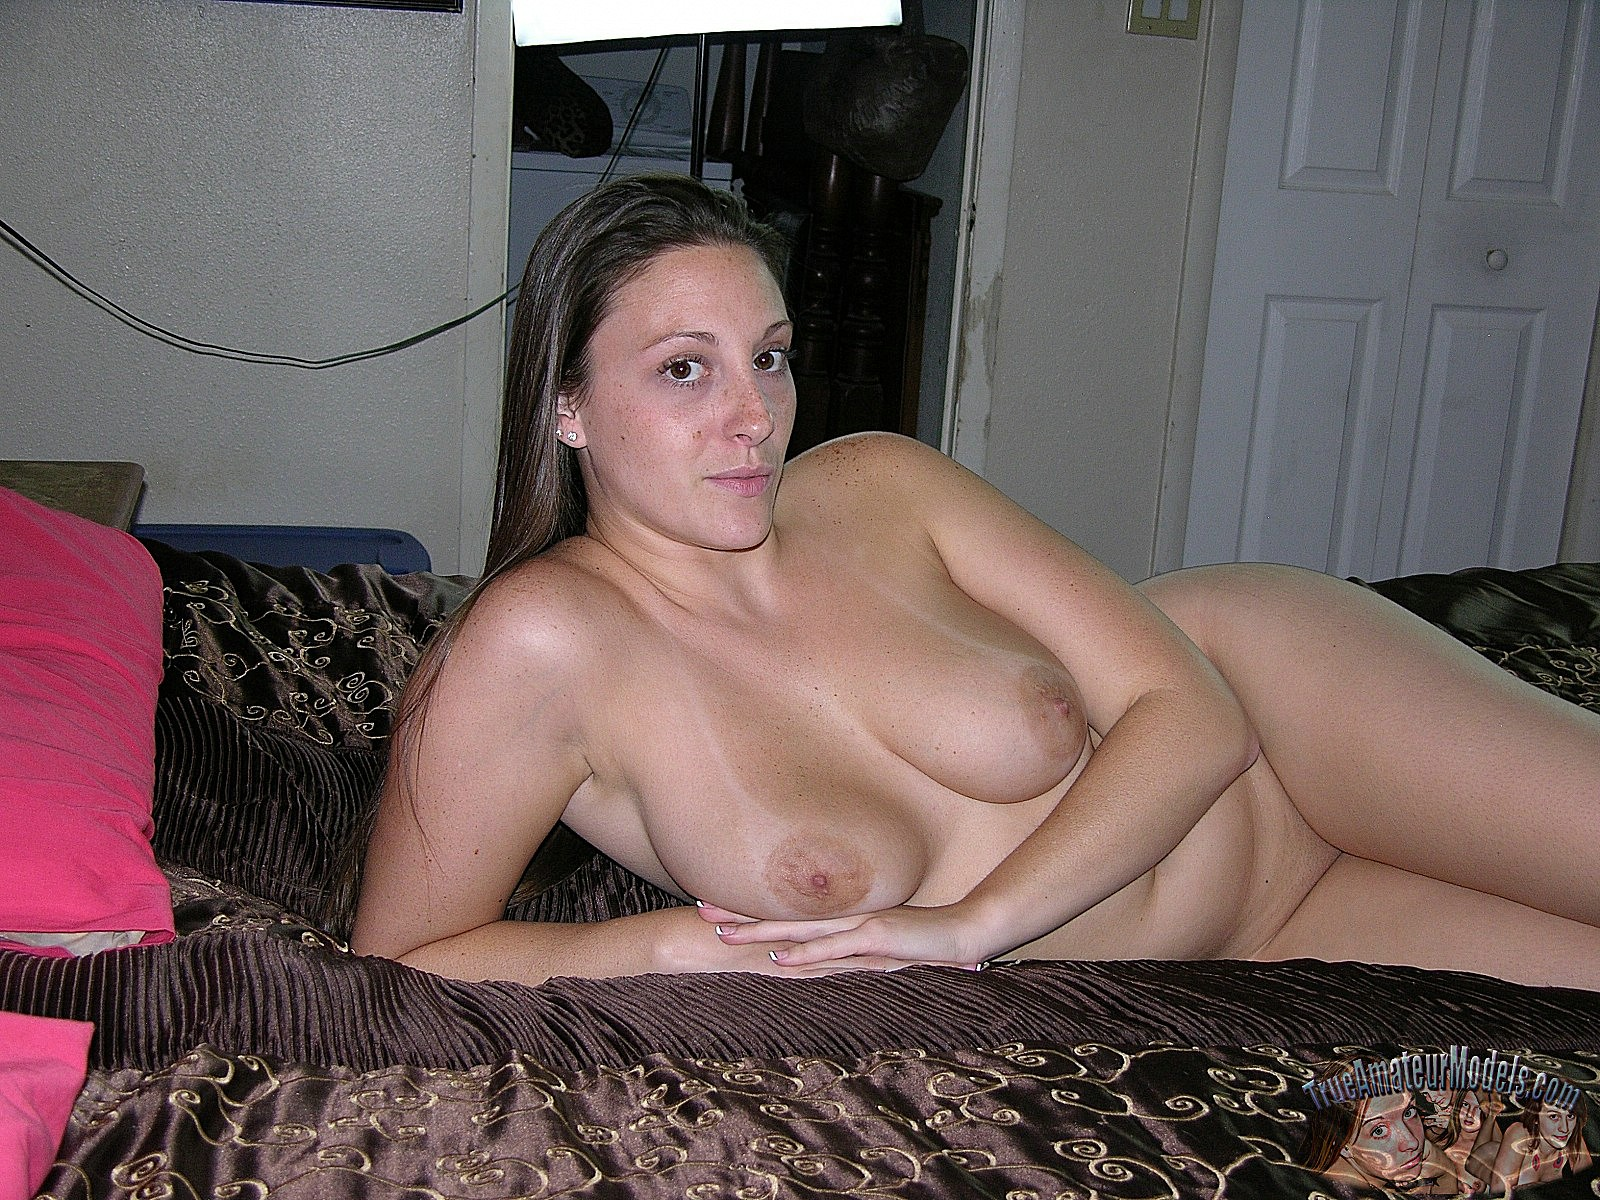 tits True amateur models big